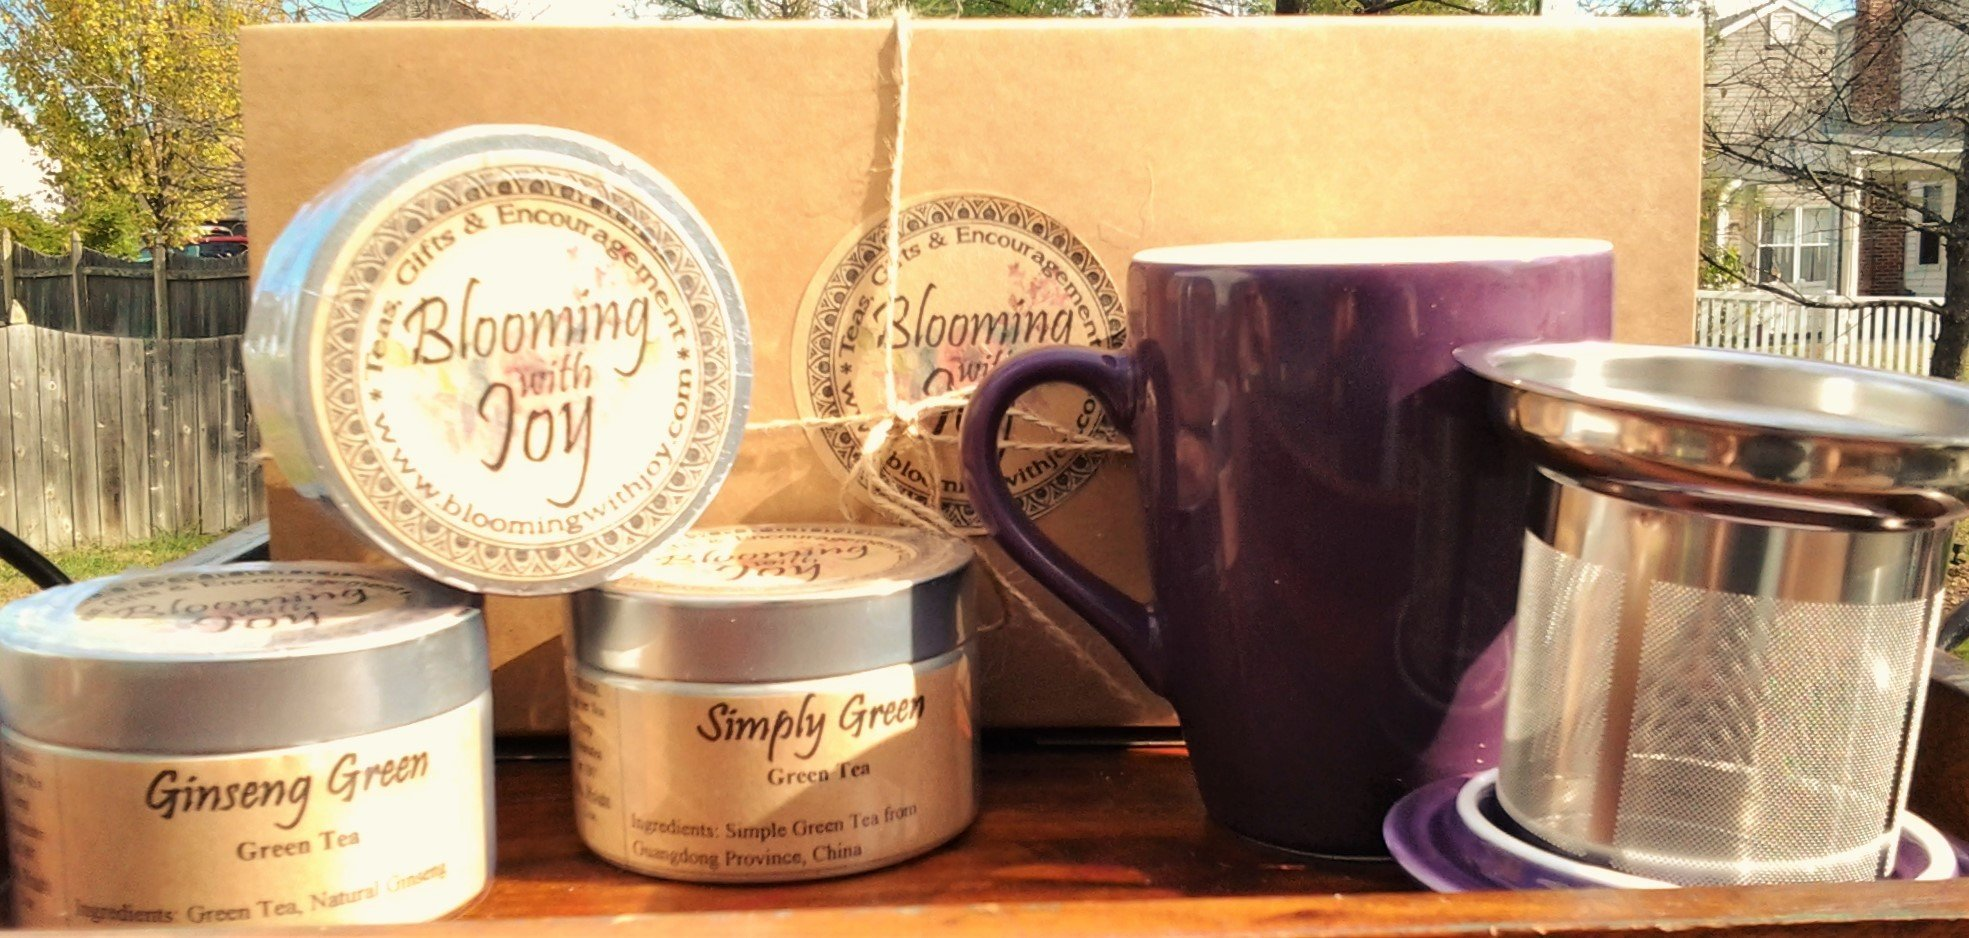 Tea Lover Gift Sets - Tea Gifts for Your Sweetie Giveaway